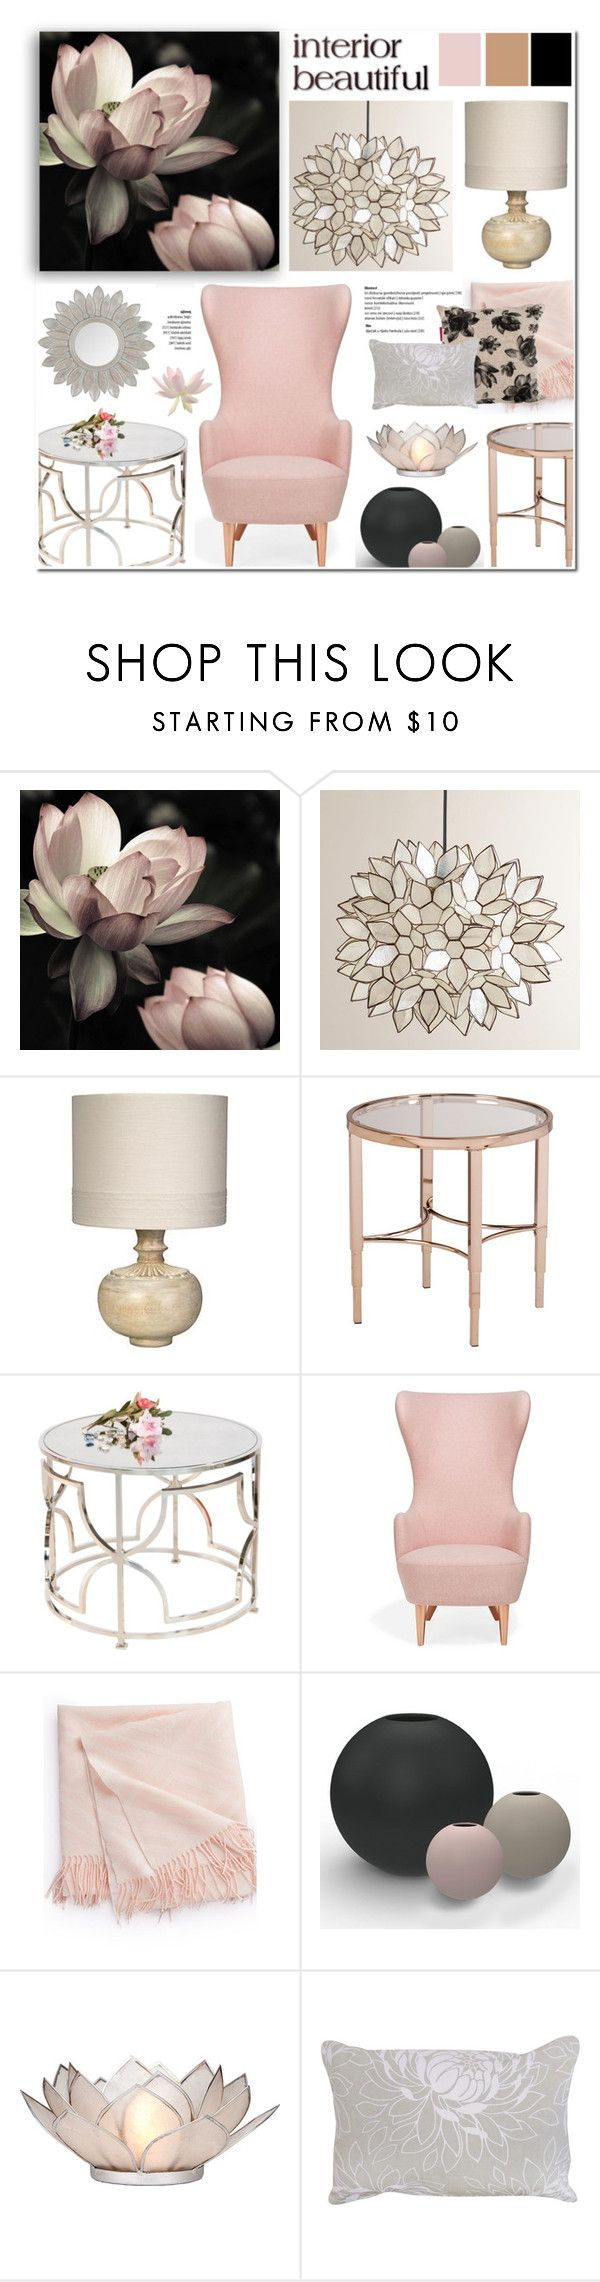 """Lotus inspired home decor"" by anyasdesigns ❤ liked on Polyvore featuring interior, interiors, interior design, home, home decor, interior decorating, Cost Plus World Market, Jamie Young, Worlds Away and Tom Dixon"